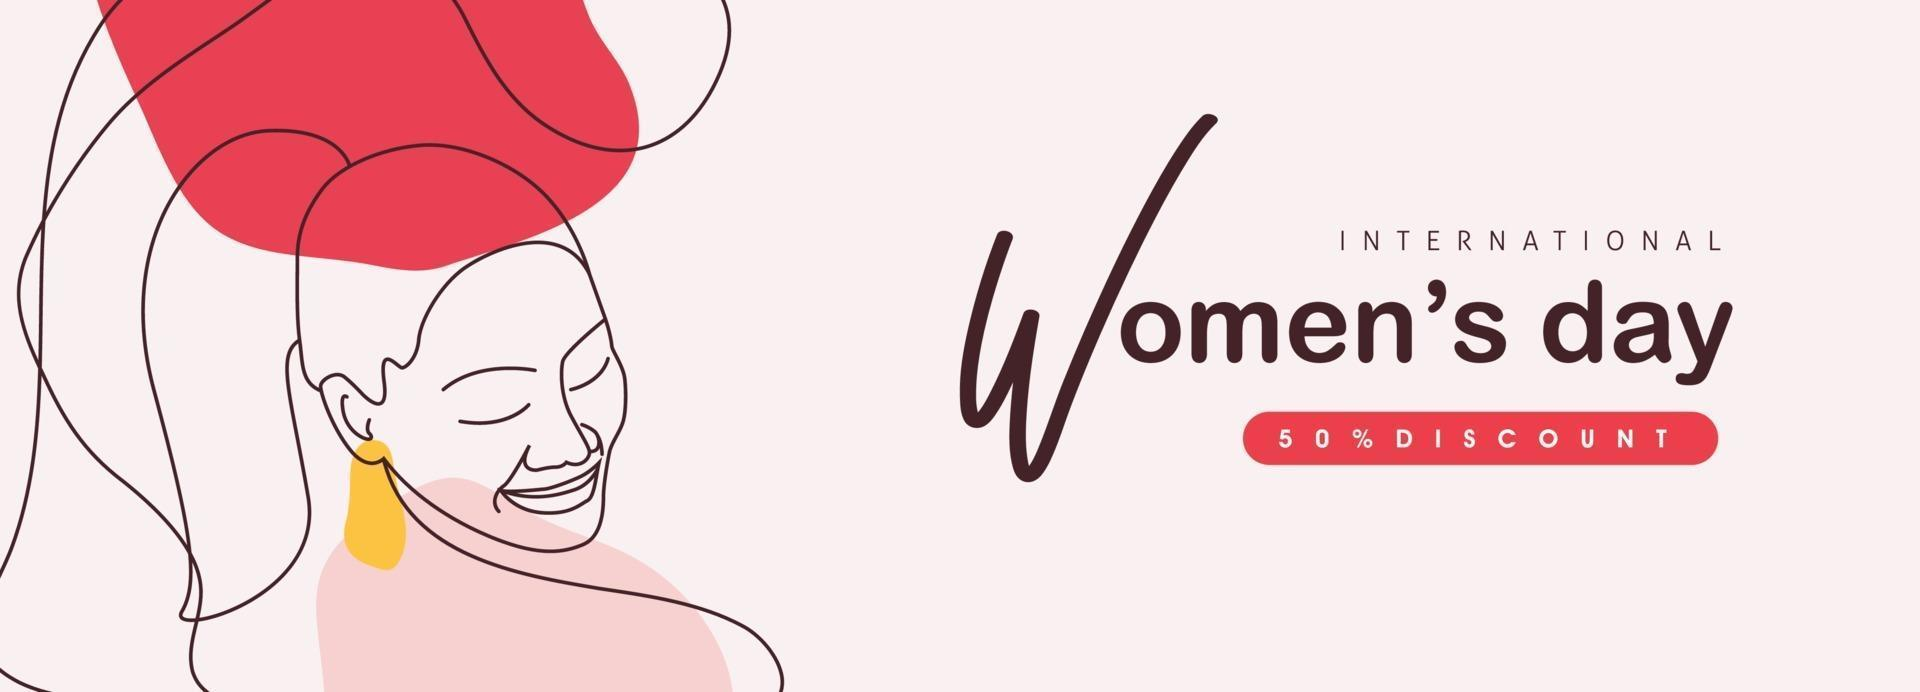 International women's Day greeting card template. vector